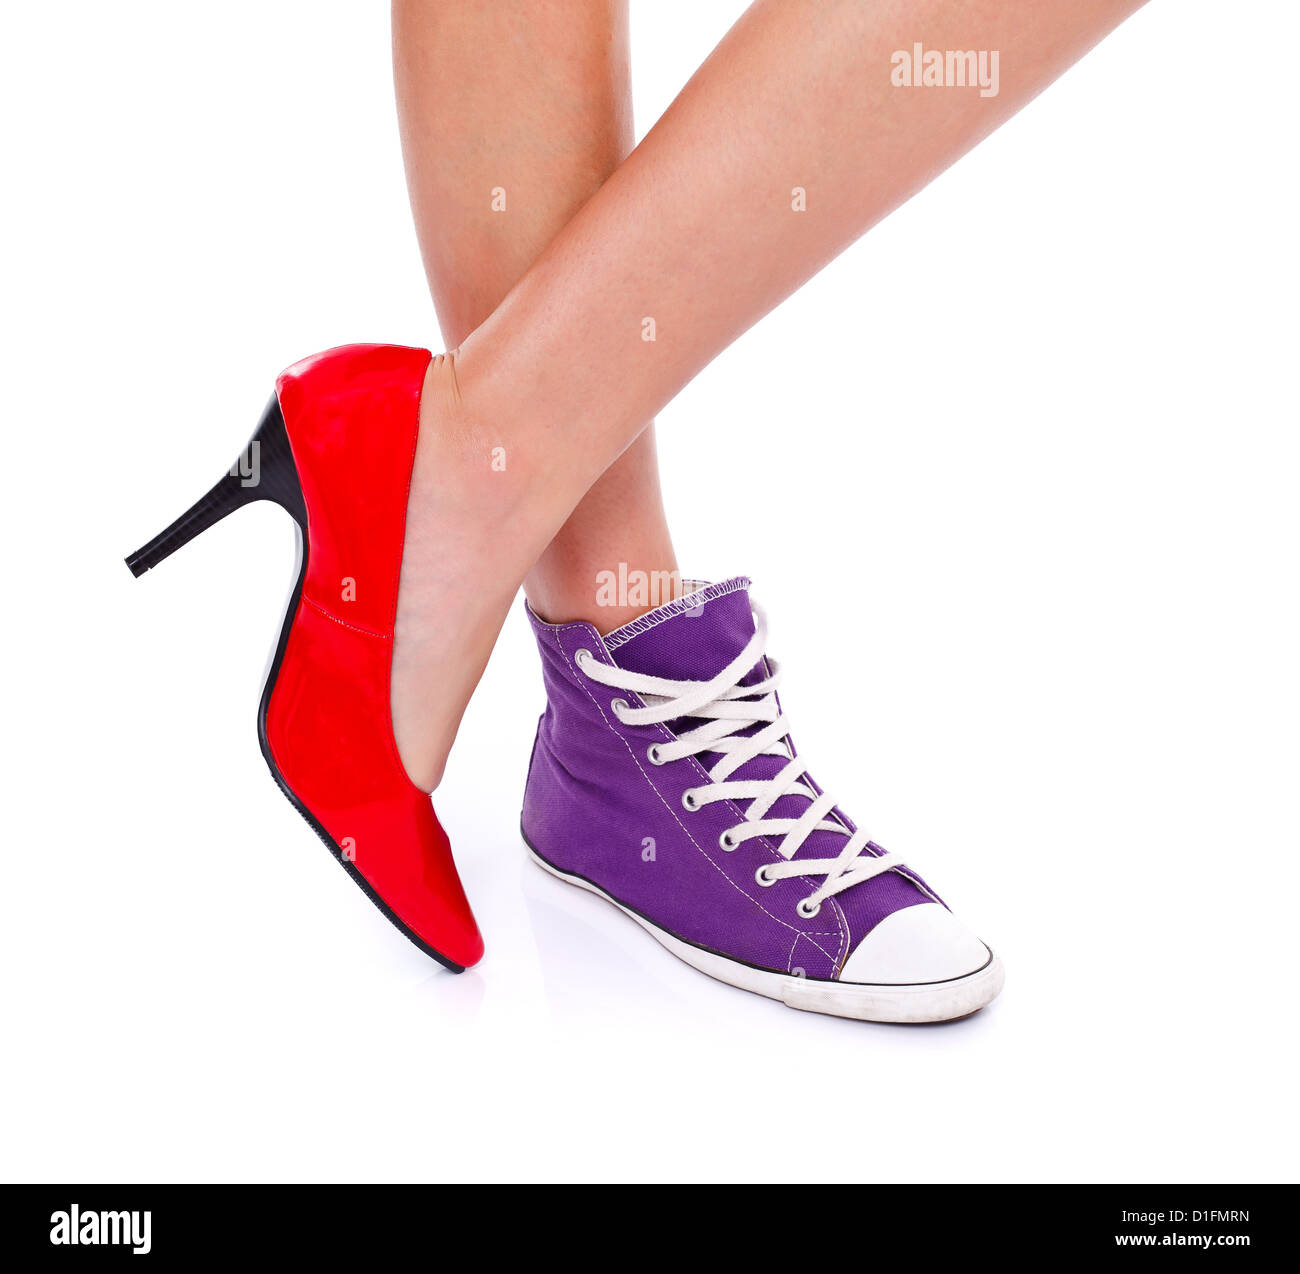 6462722c23b4 Woman wearing red high heel shoe on one leg and sport shoe on another leg